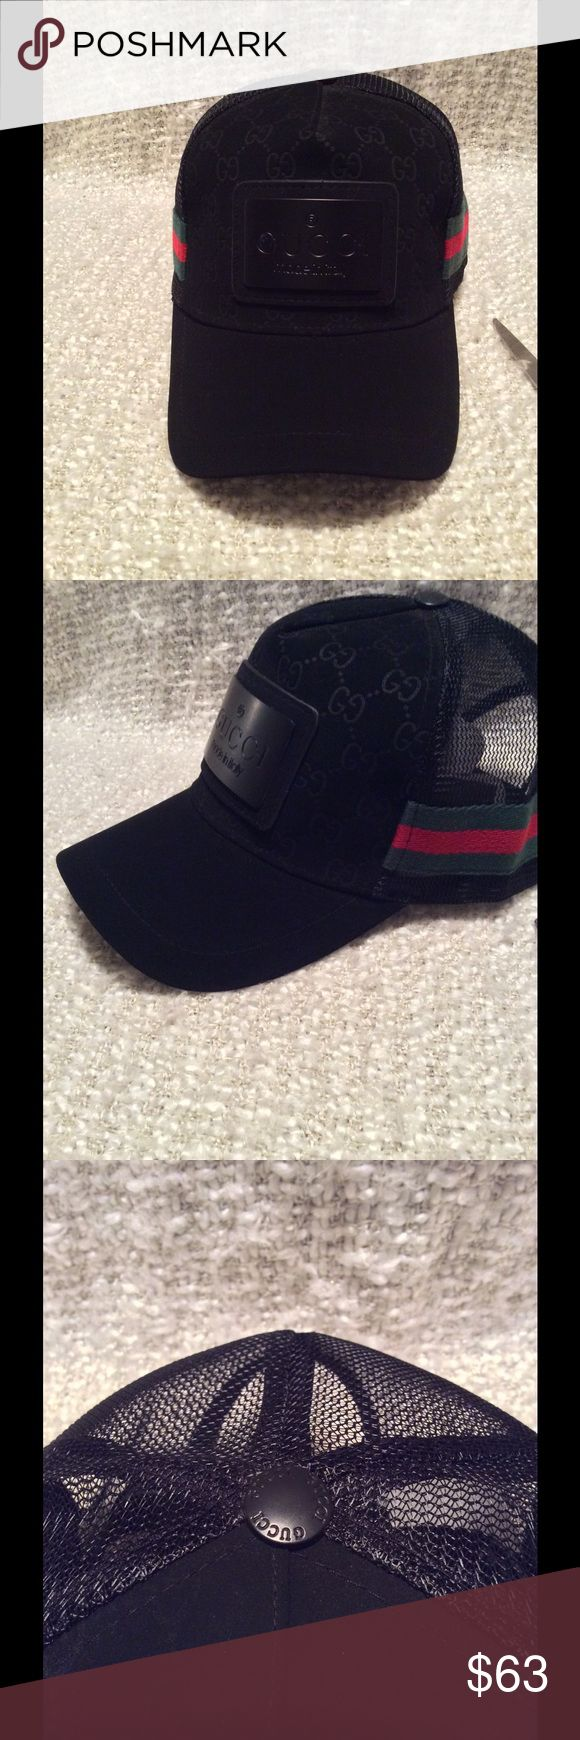 Gucci hat Gucci hat new with tag Accessories Hats